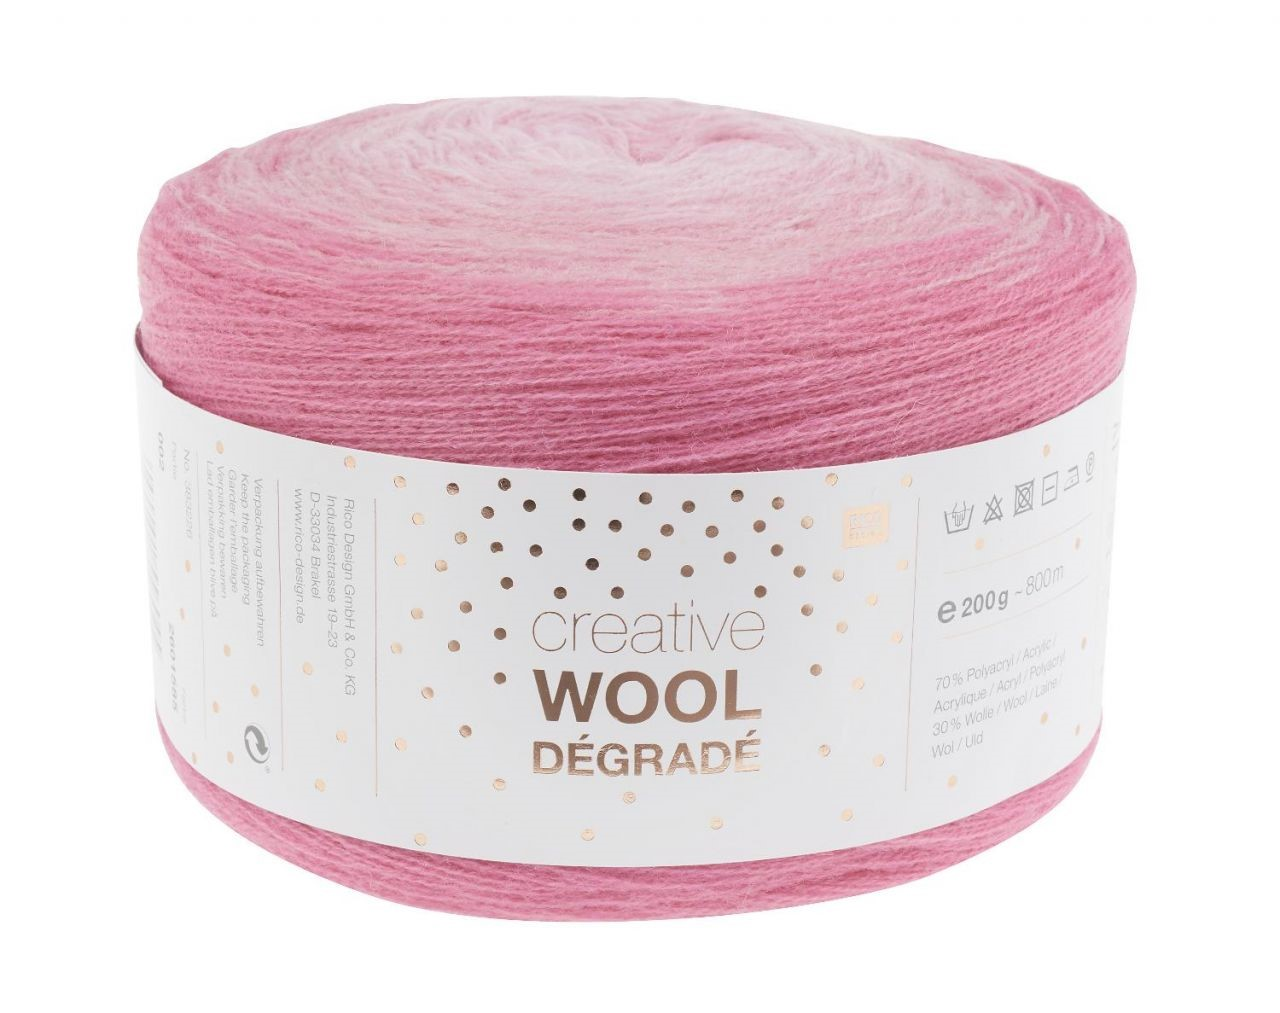 2 Creative wool degrade rico.jpg